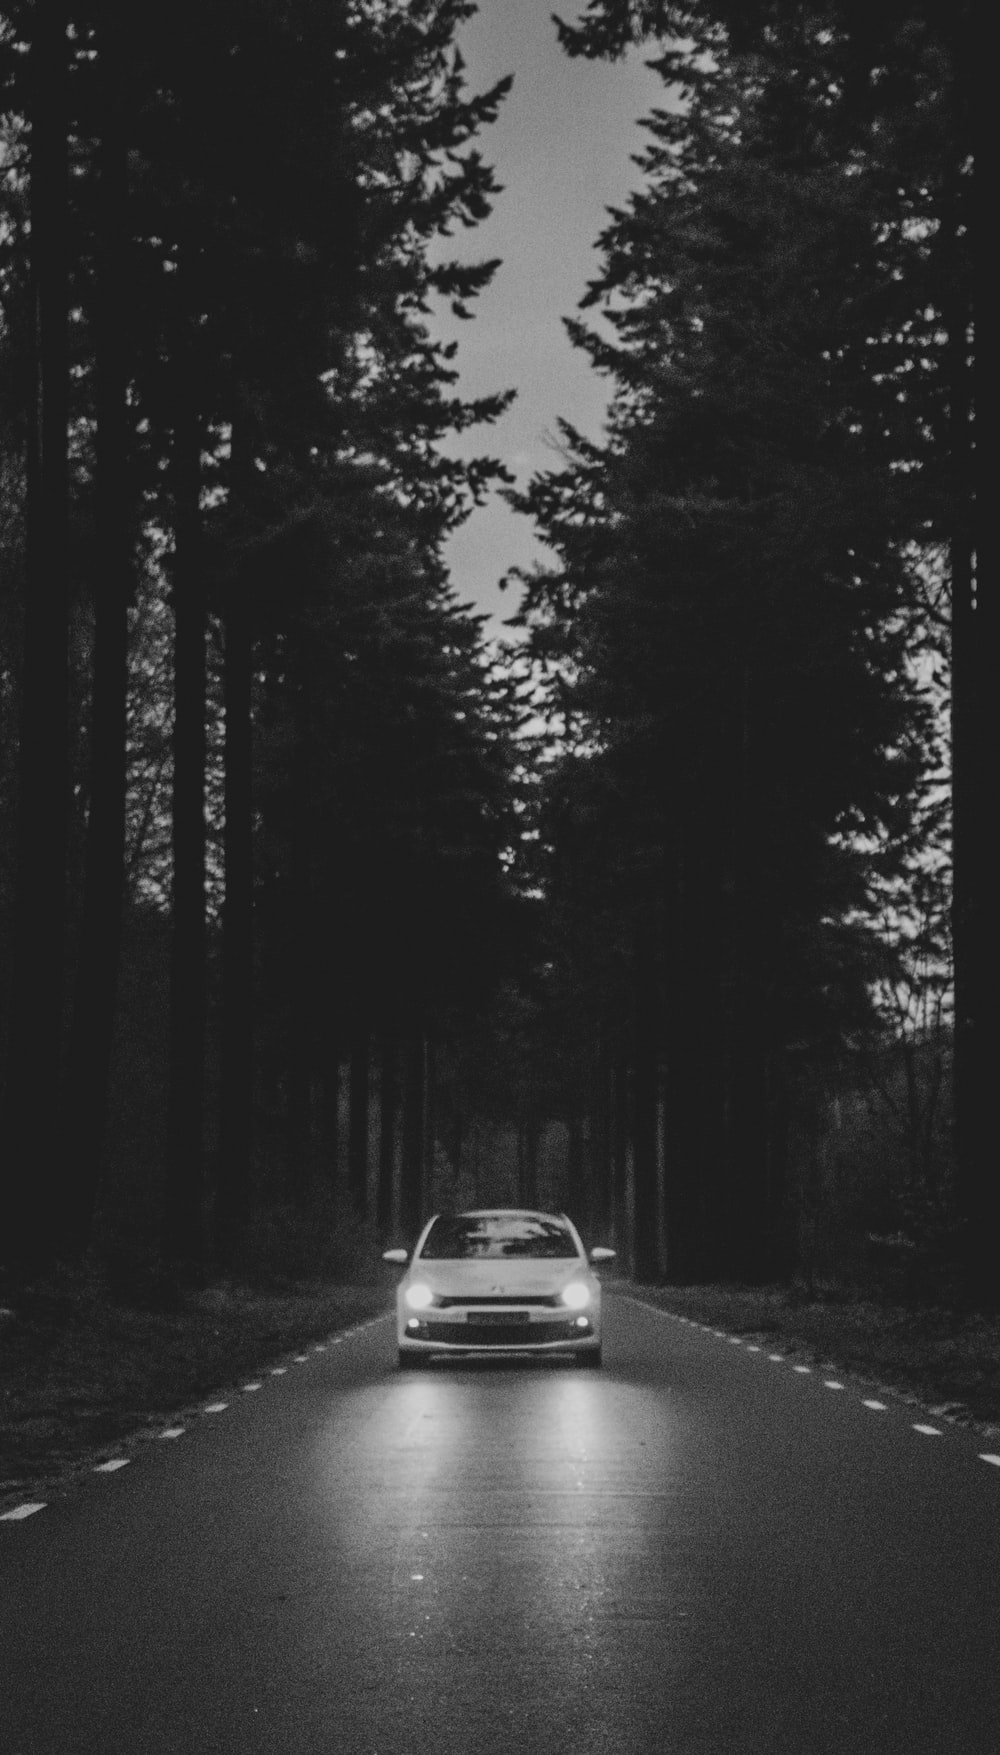 car passing through road between trees